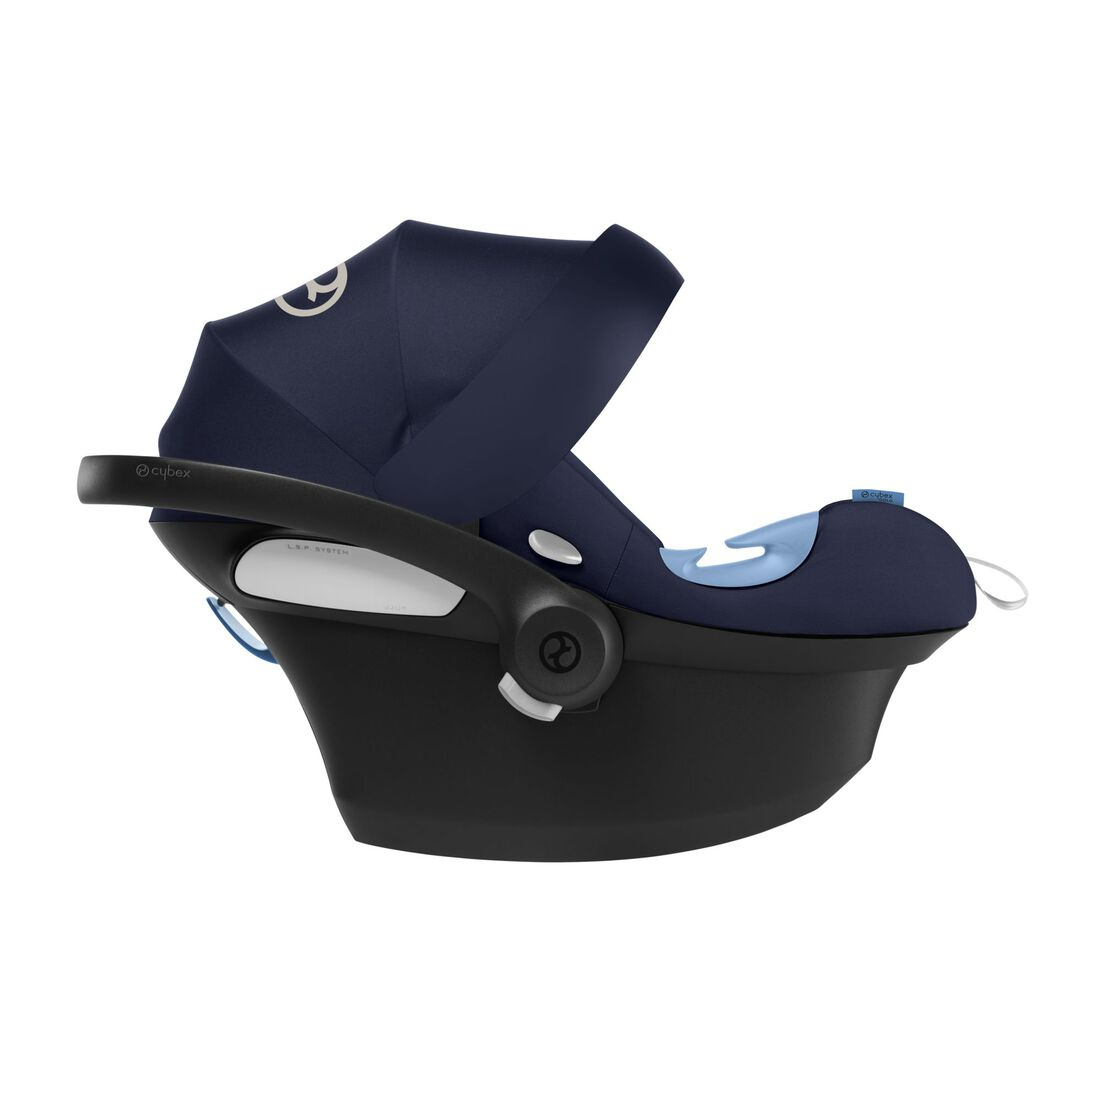 CYBEX Aton M i-Size - Navy Blue in Navy Blue large Bild 6